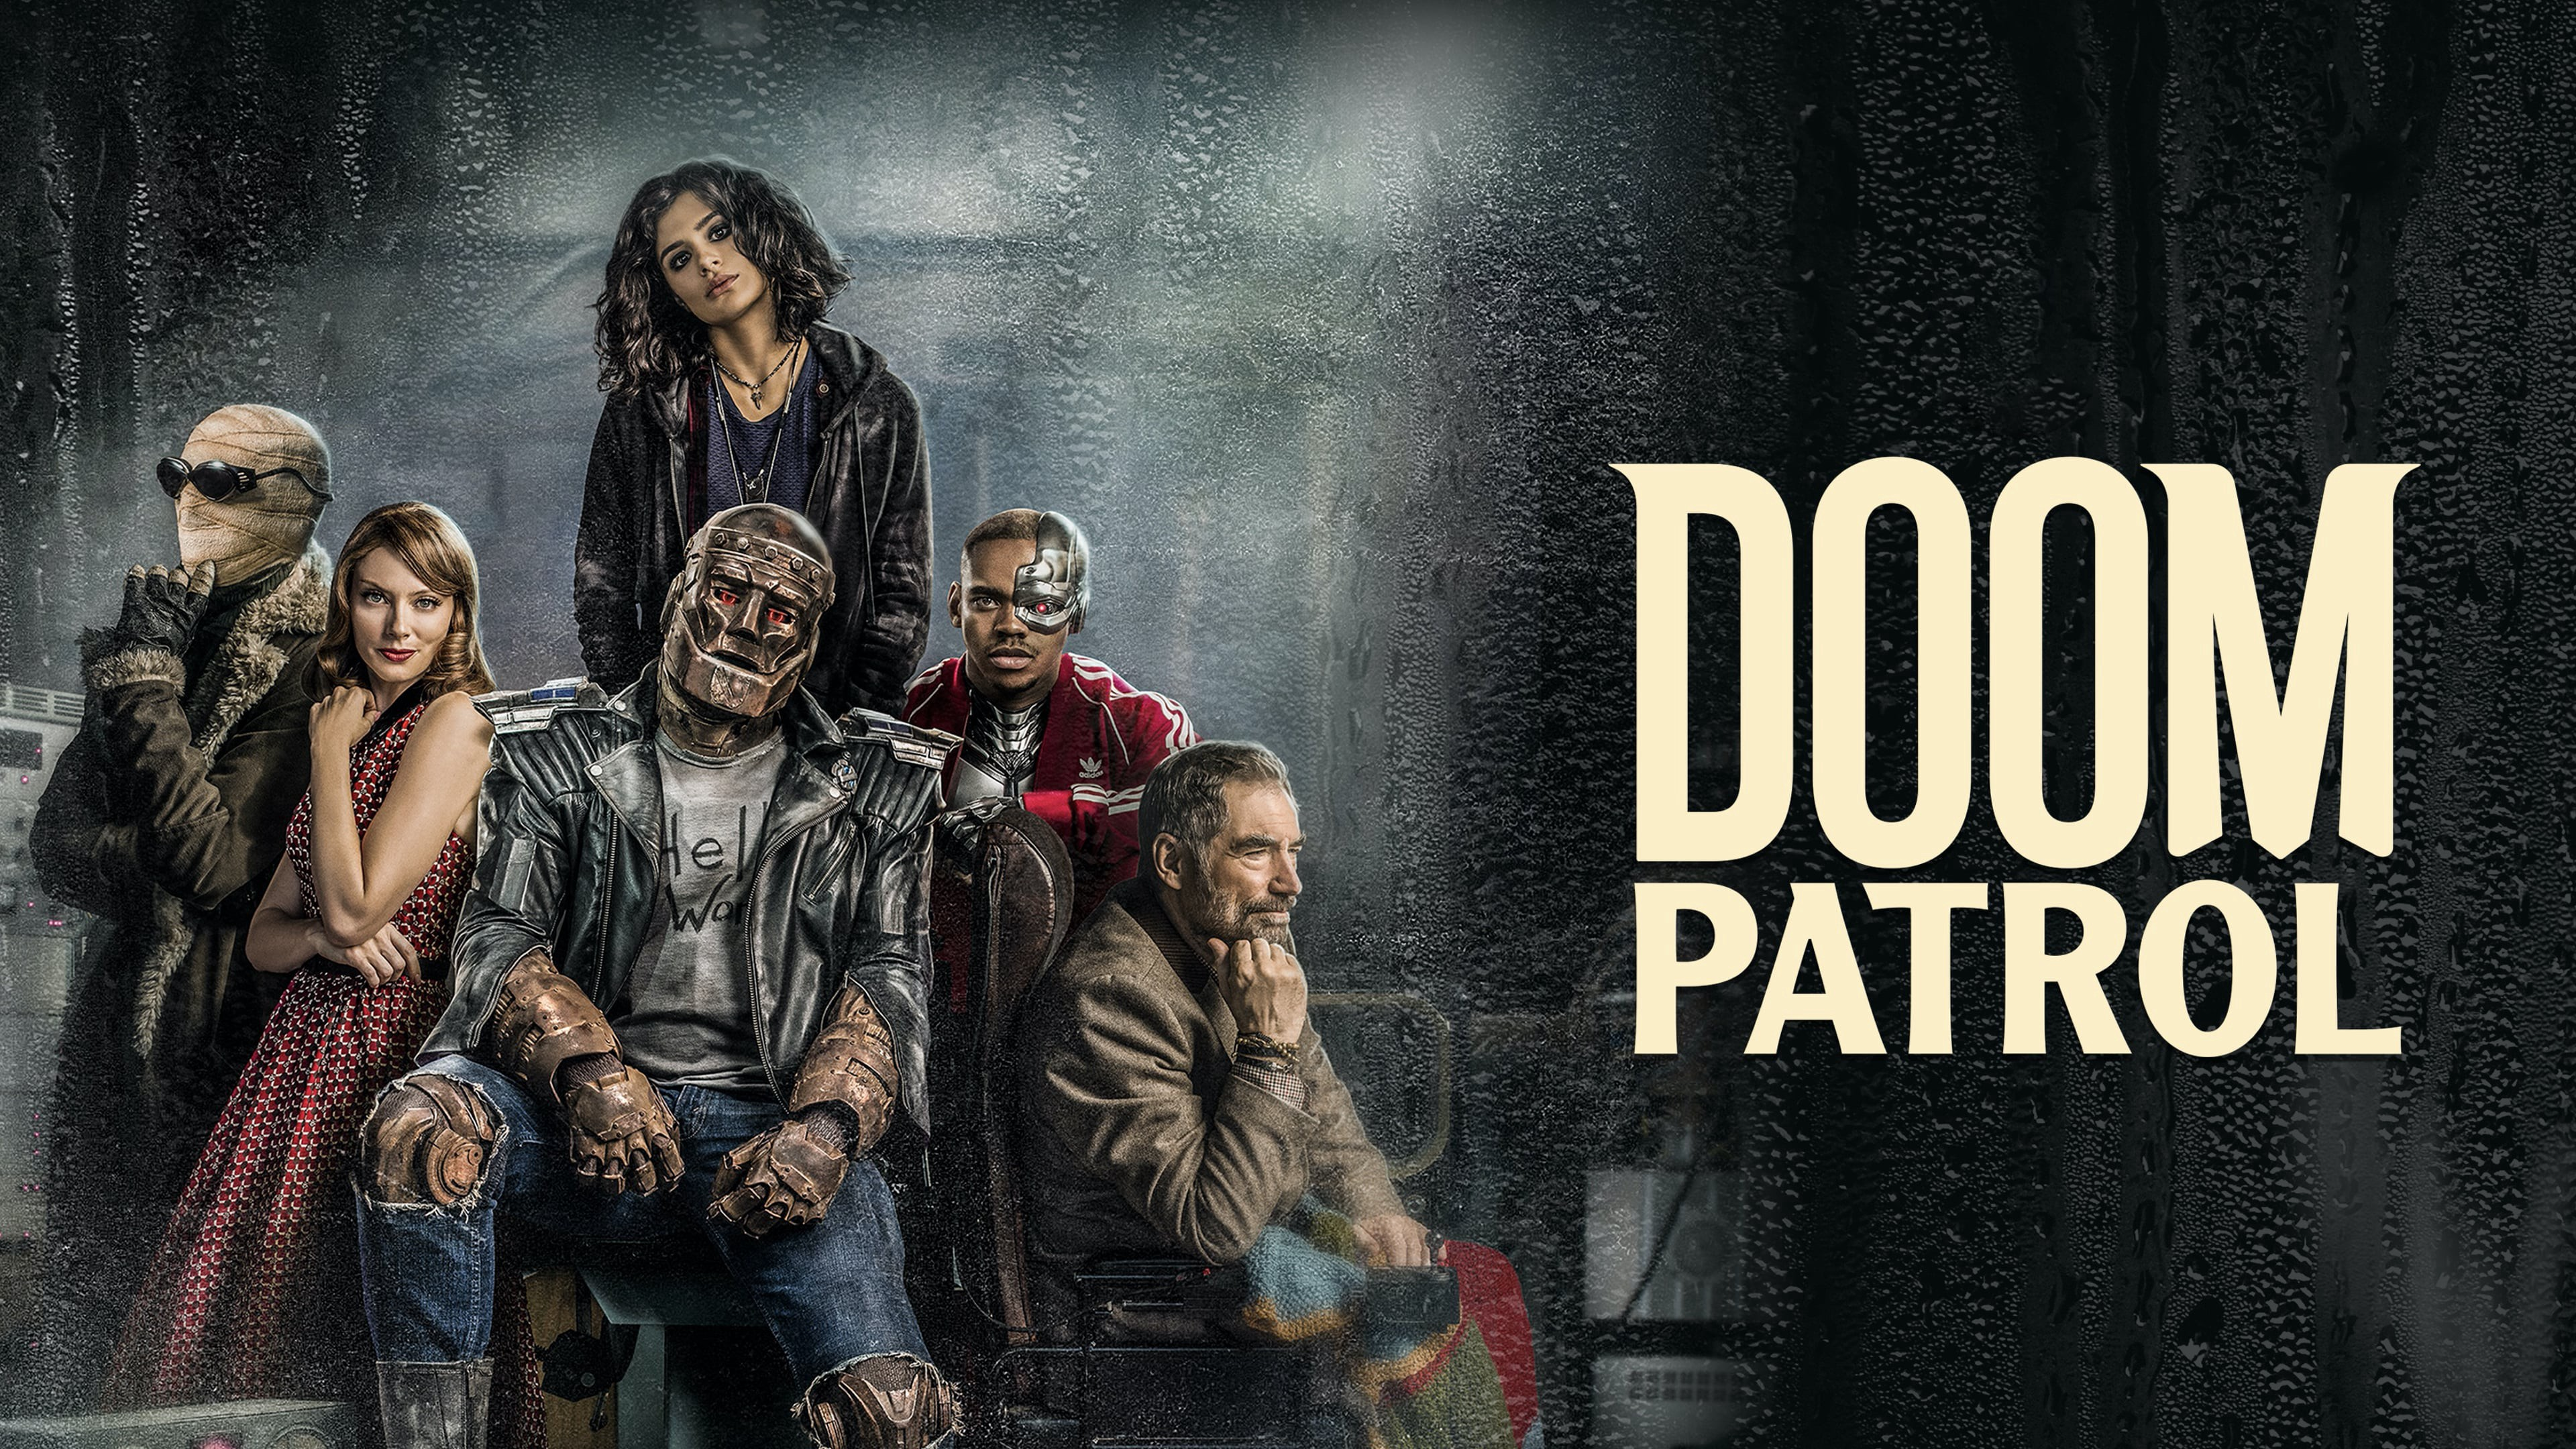 Watch Streaming Doom Patrol Season 2 Episode 1 Full Episodes By Doom Patrol 2x1 2020 Jun 2020 Medium